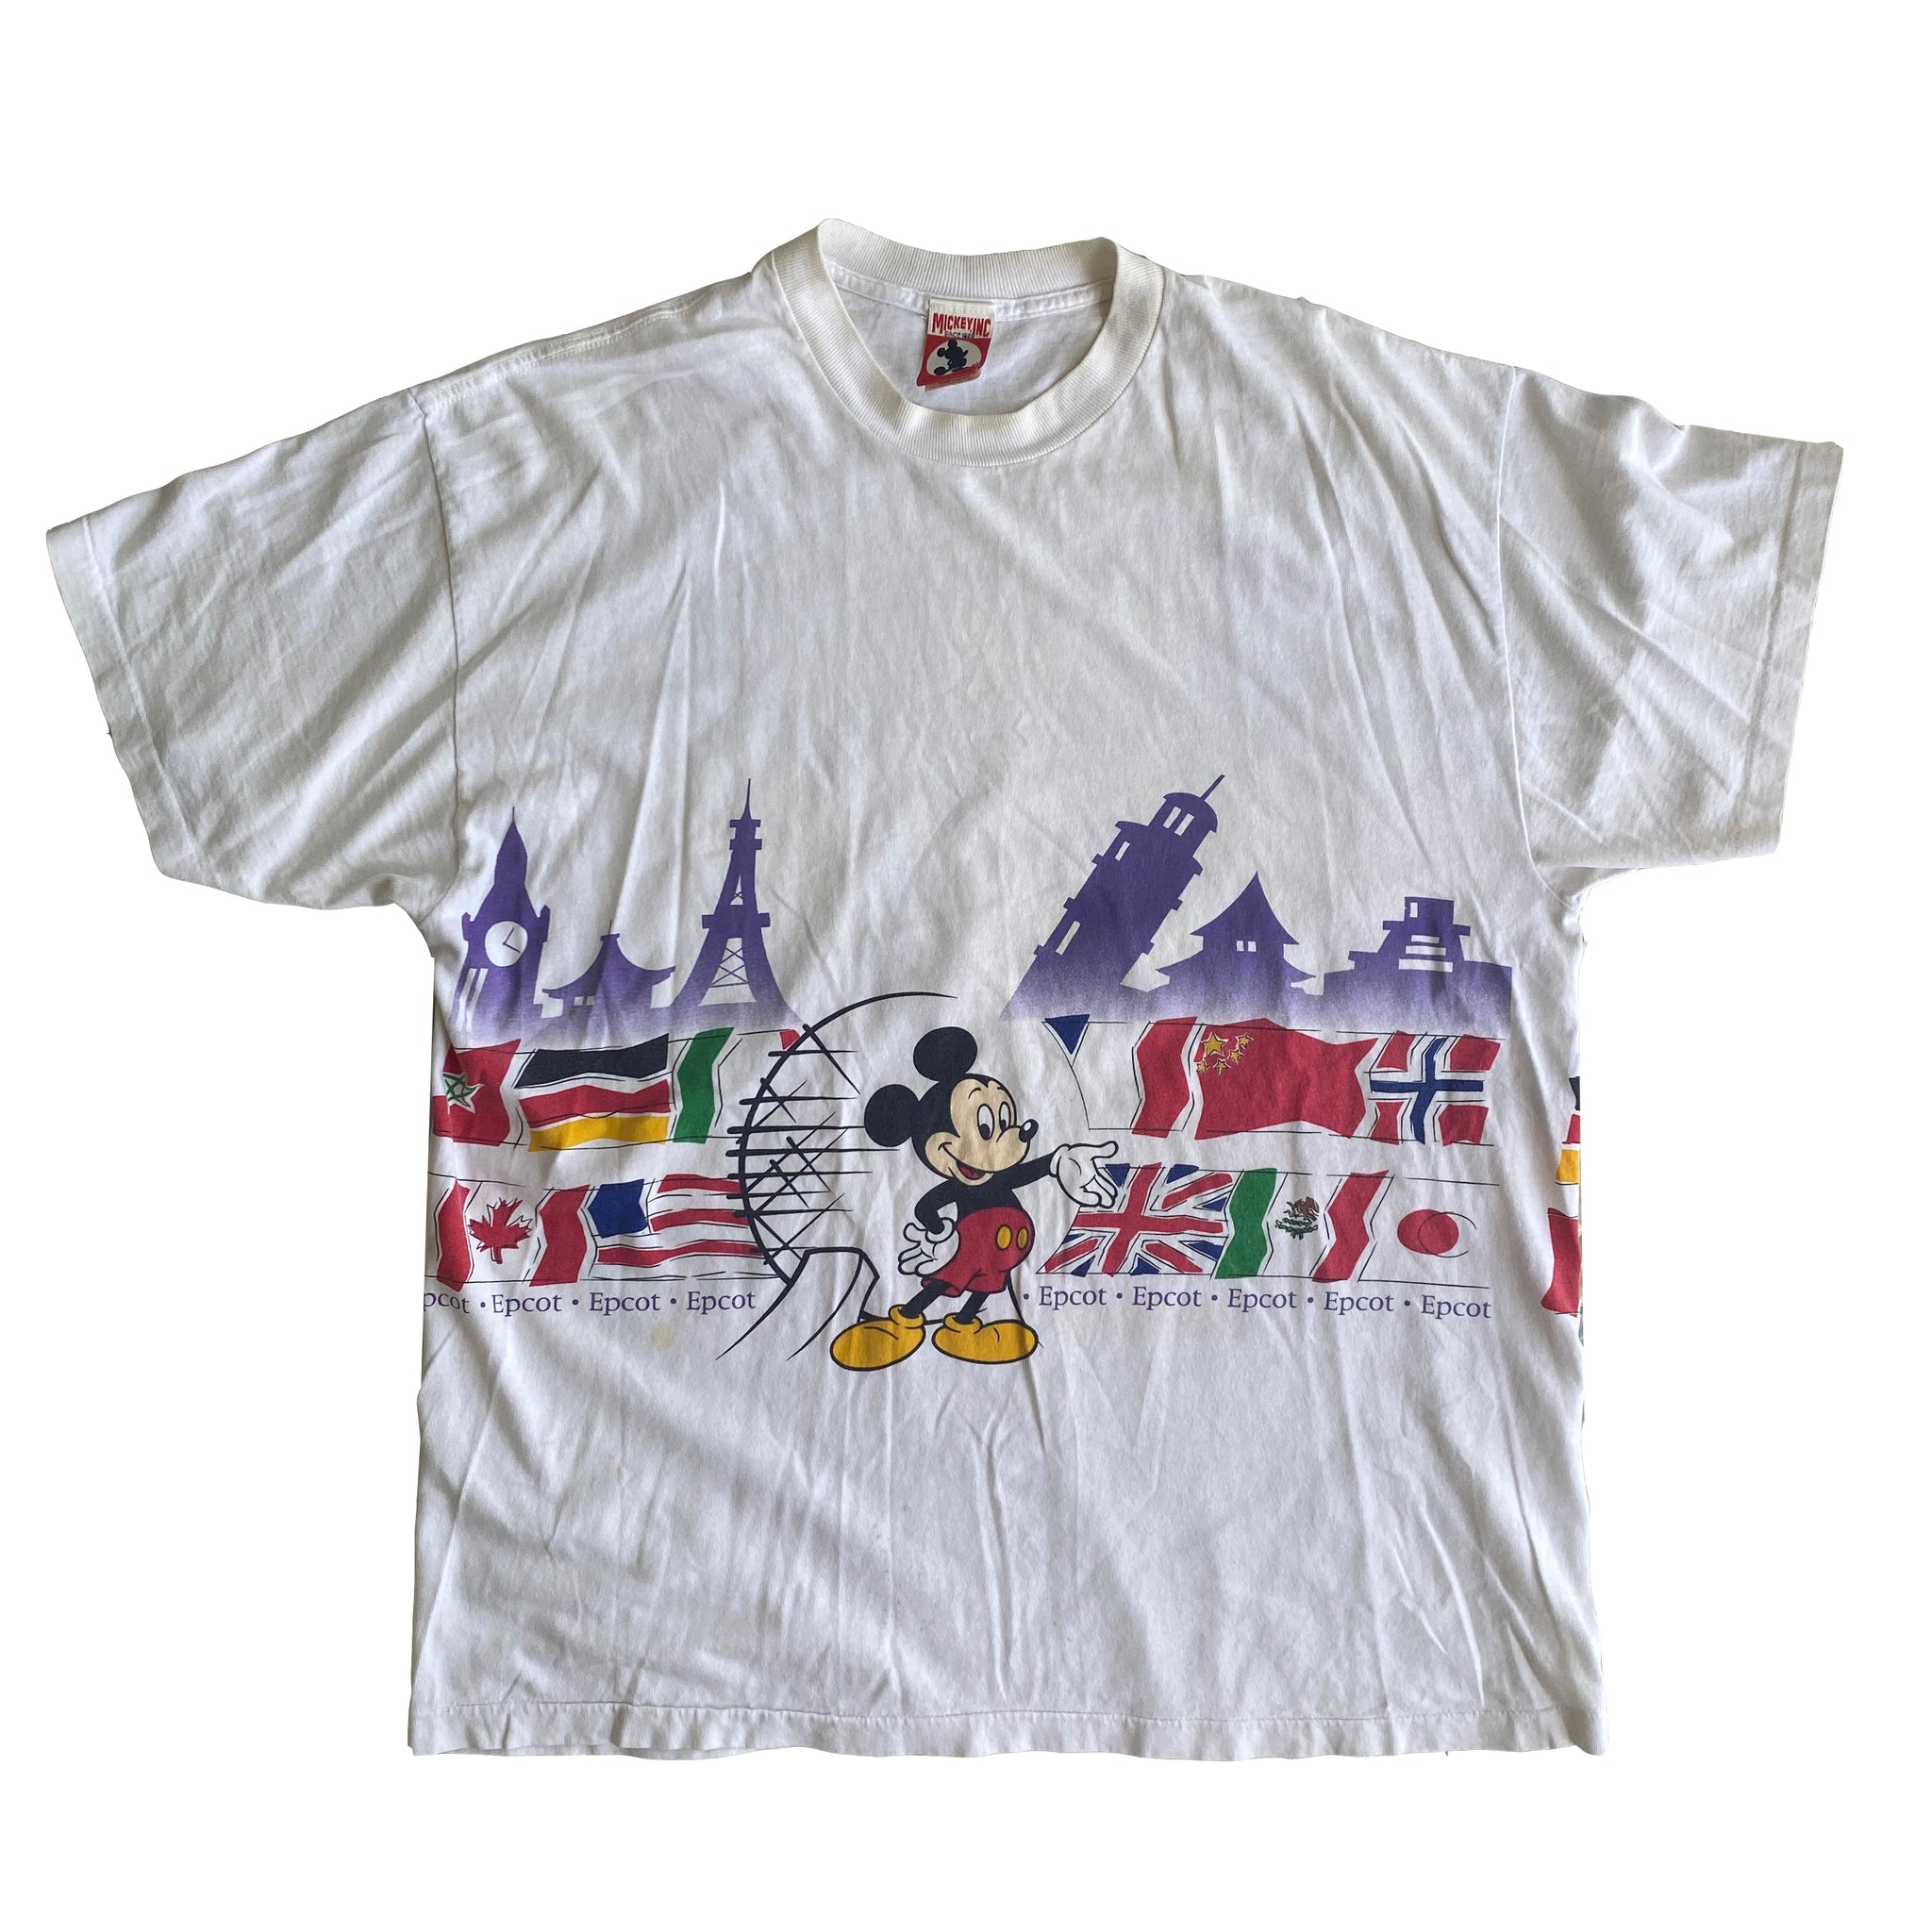 Epcot World Showcase- XL - VTG '90s